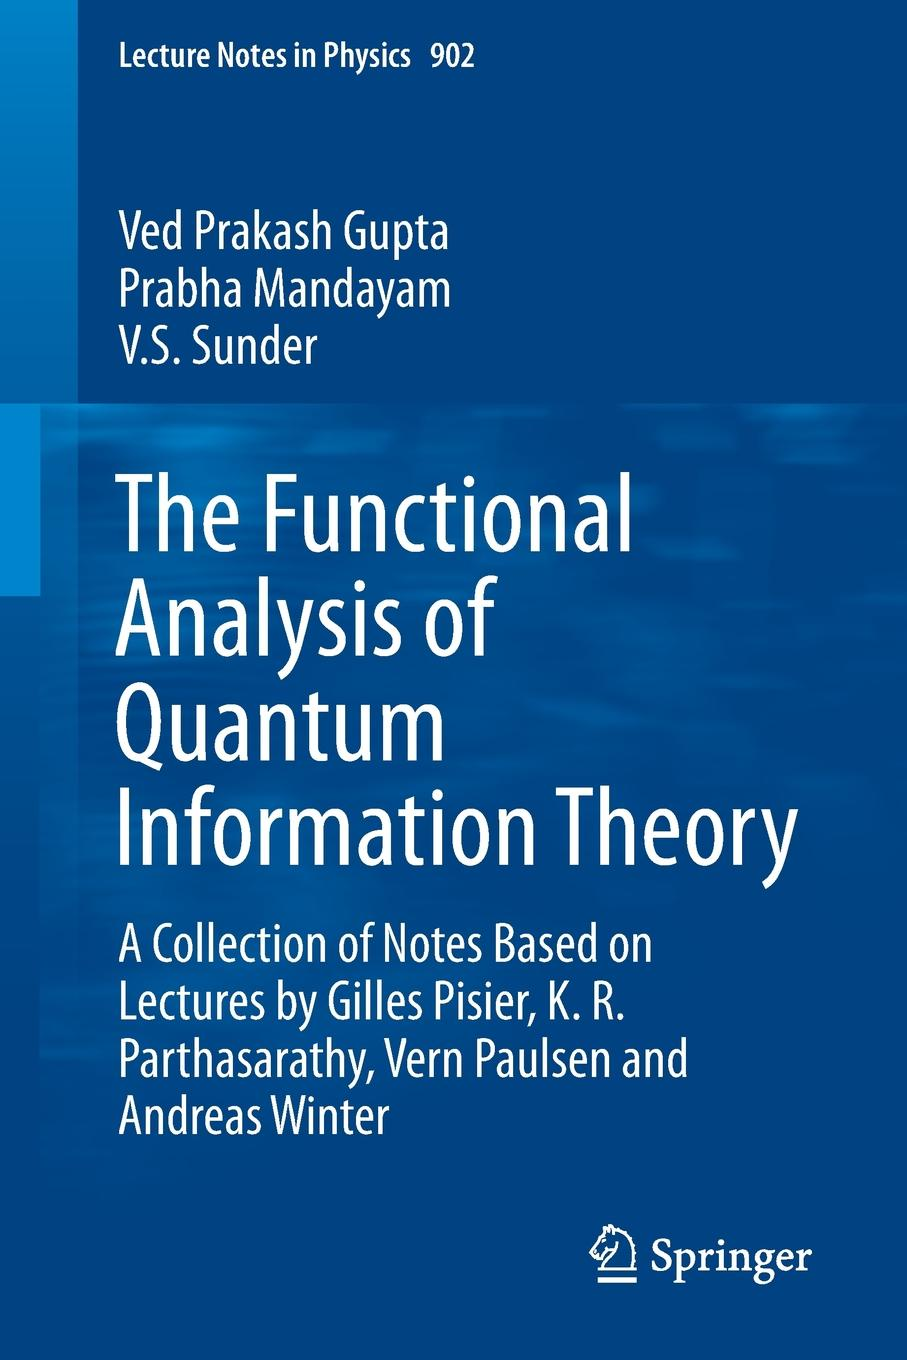 Ved Prakash Gupta, Prabha Mandayam, V.S. Sunder The Functional Analysis of Quantum Information Theory. A Collection of Notes Based on Lectures by Gilles Pisier, K. R. Parthasarathy, Vern Paulsen and Andreas Winter chris j isham lectures on quantum theory mathematical and structural foundations